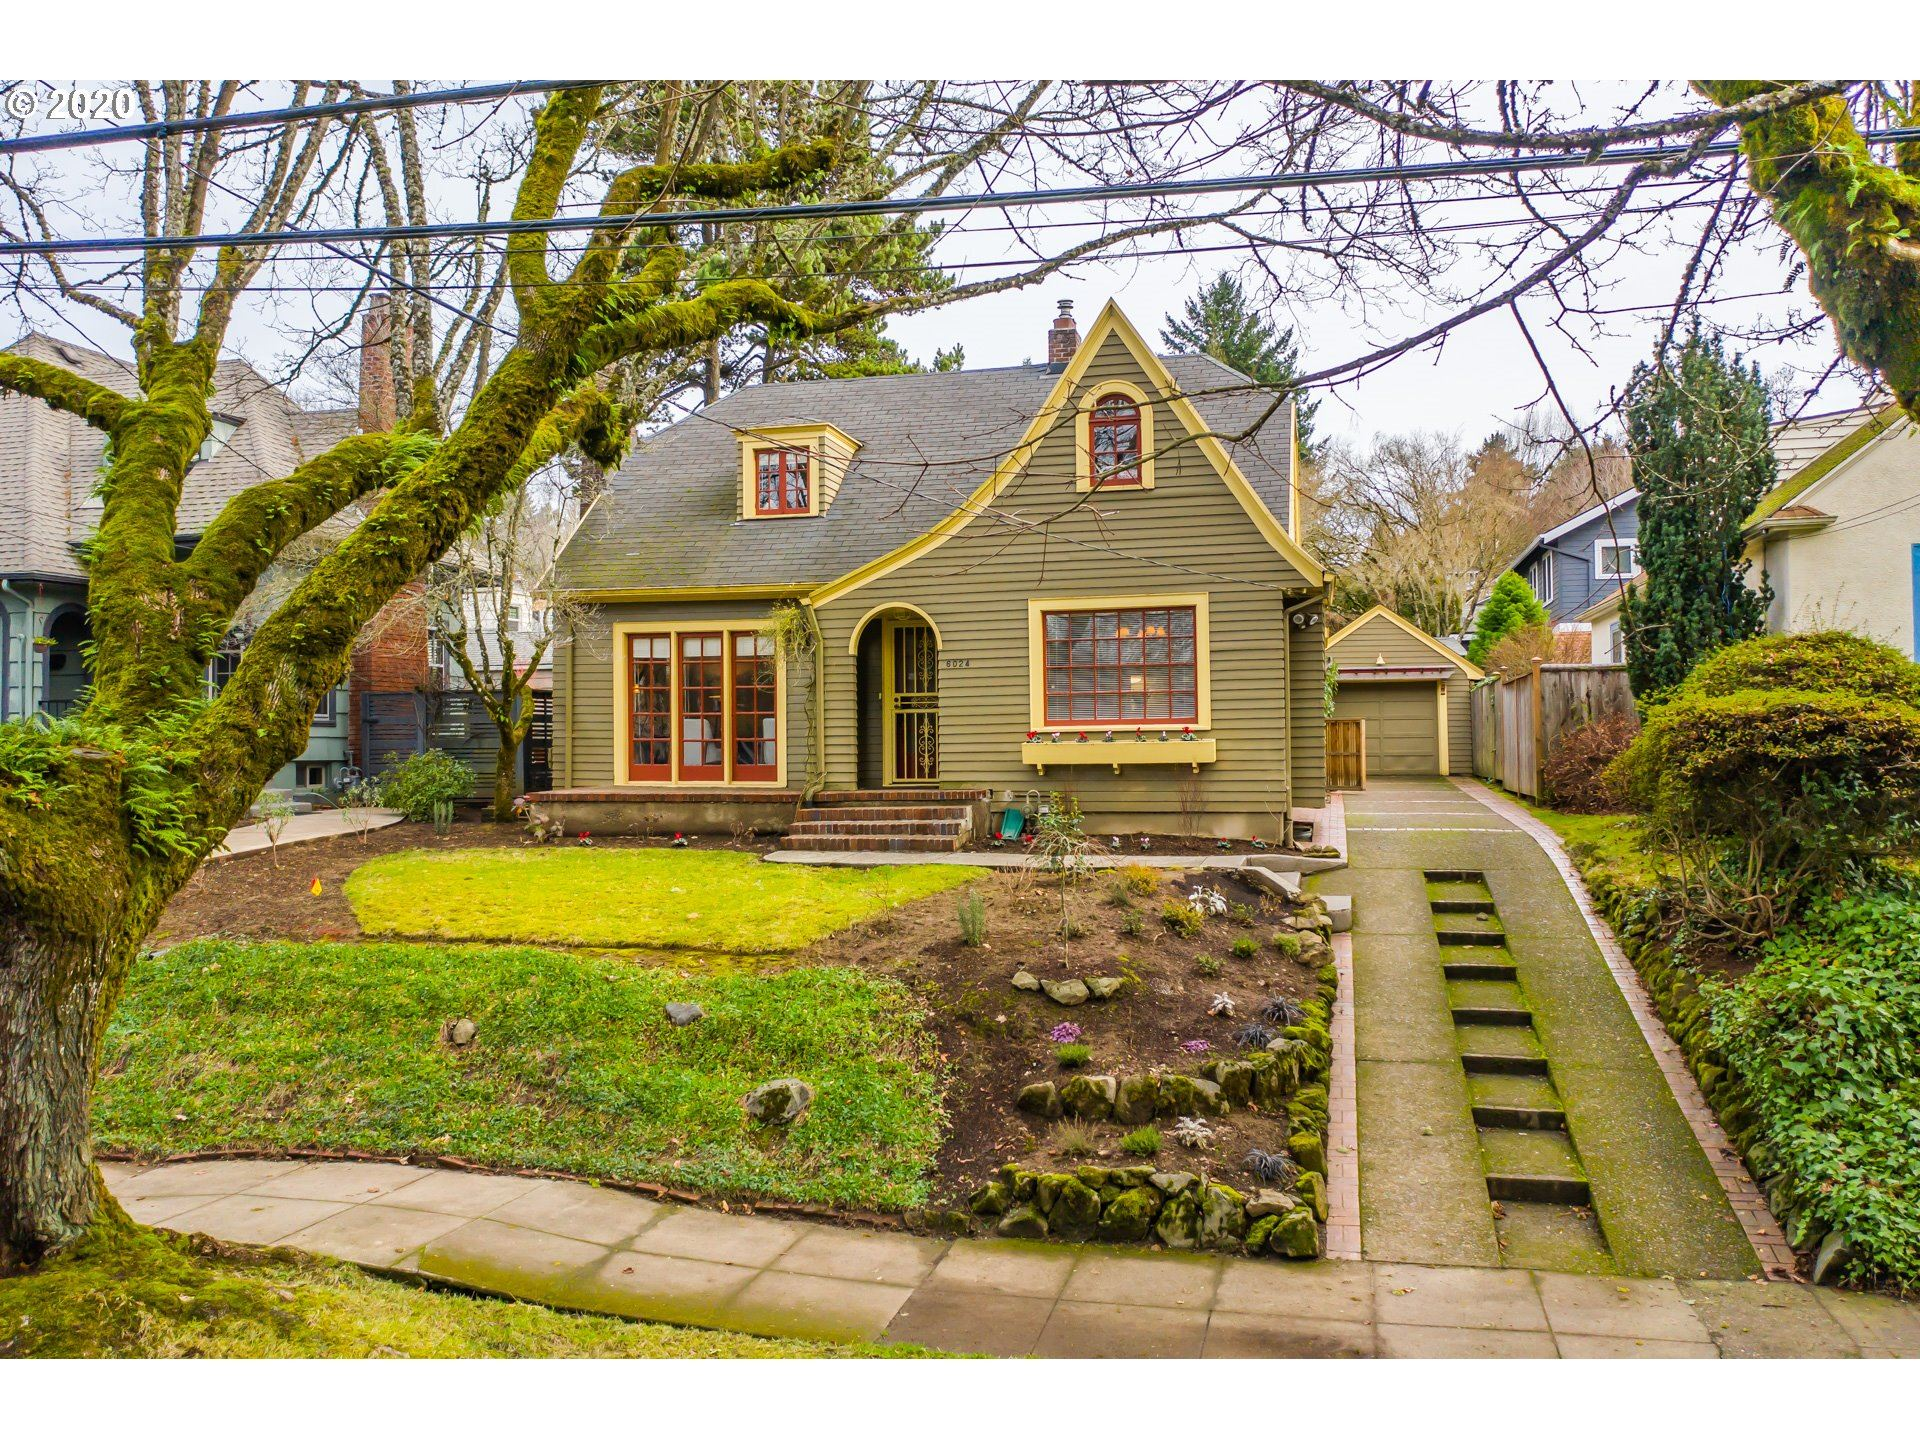 6024 SE 36TH AVE, Portland, OR 97202 - MLS#: 20618908